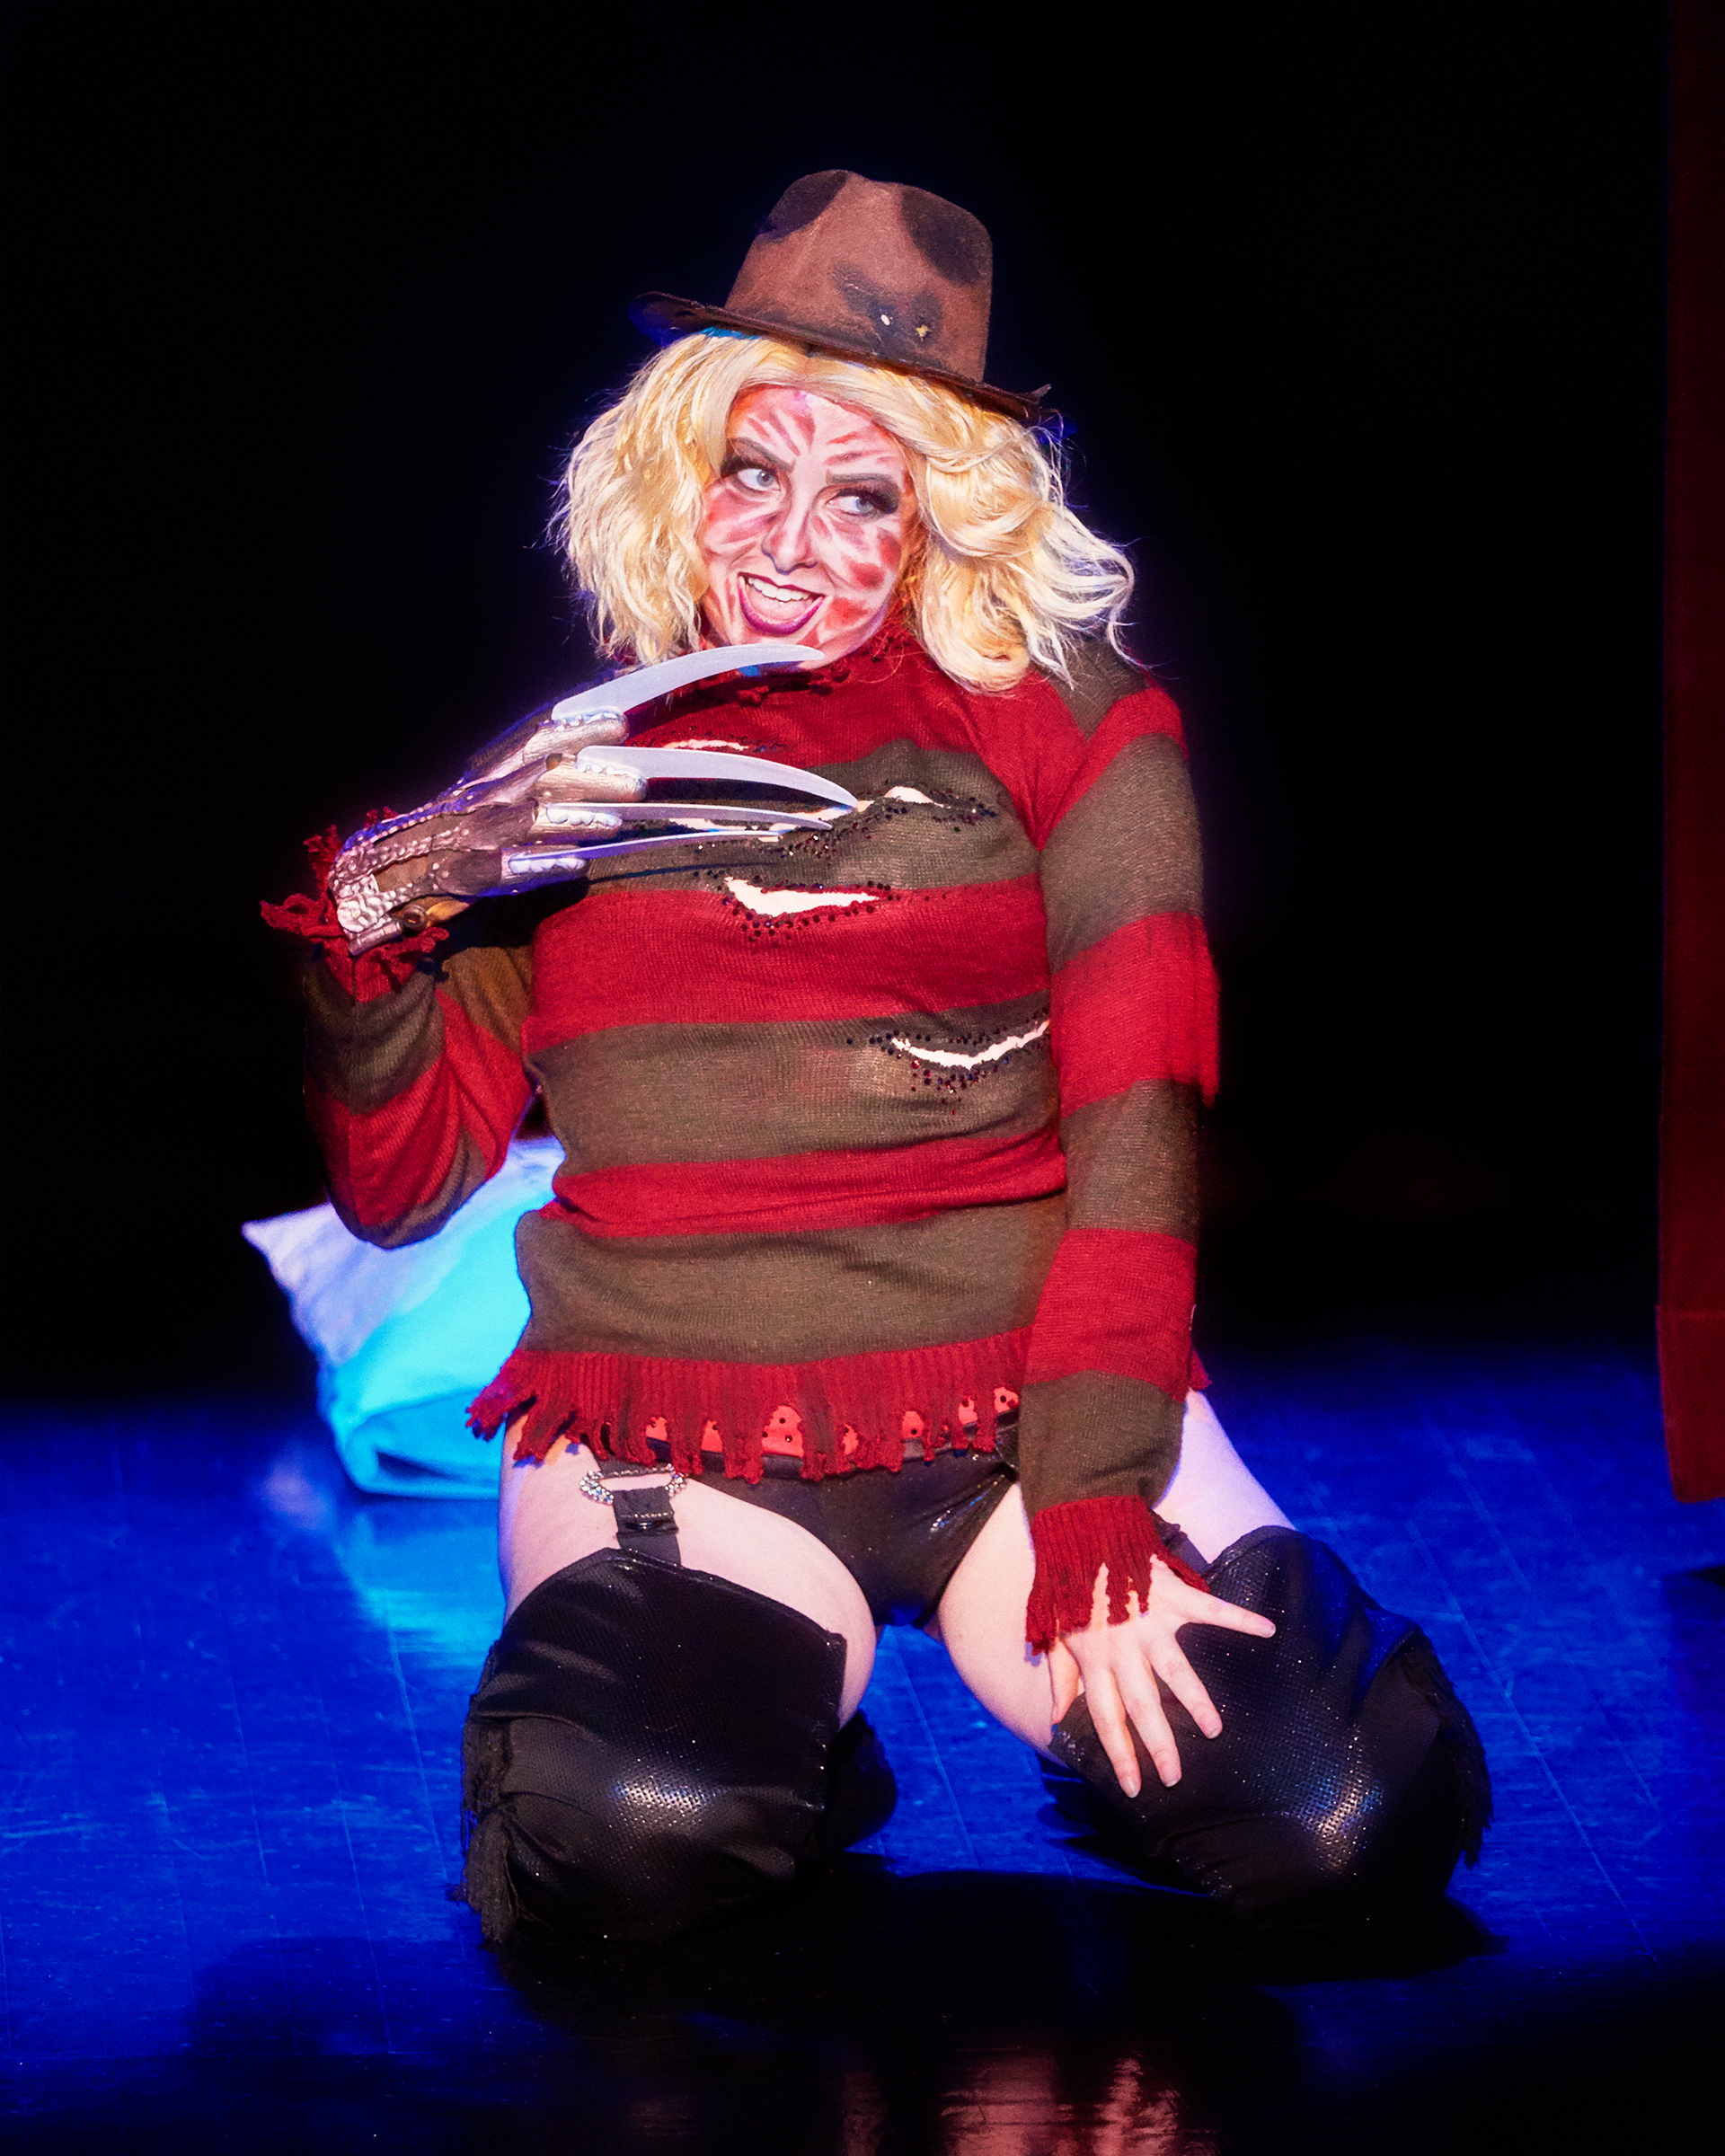 Betty Quirk as Freddy Krueger by Lick my Lenscap